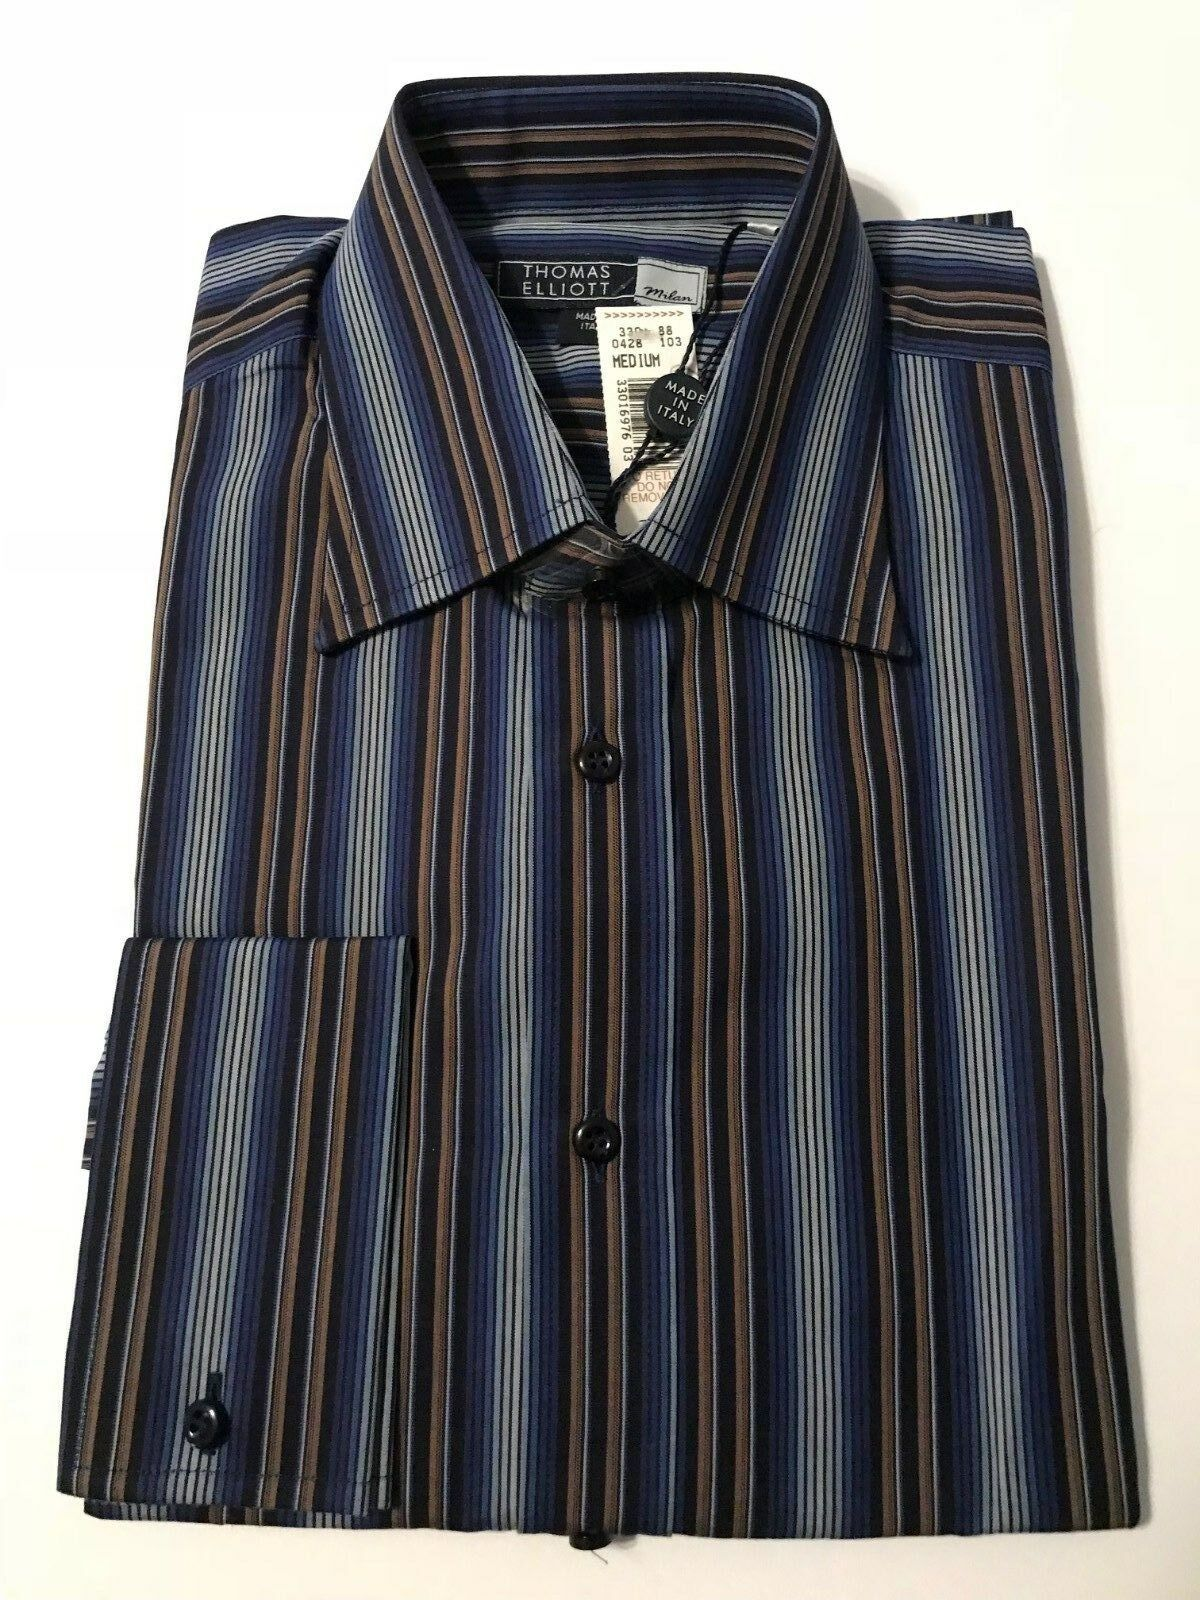 Thomas Elliott Milan bluee Varied Stripe French Cuff 100% Cotton Shirt Size M